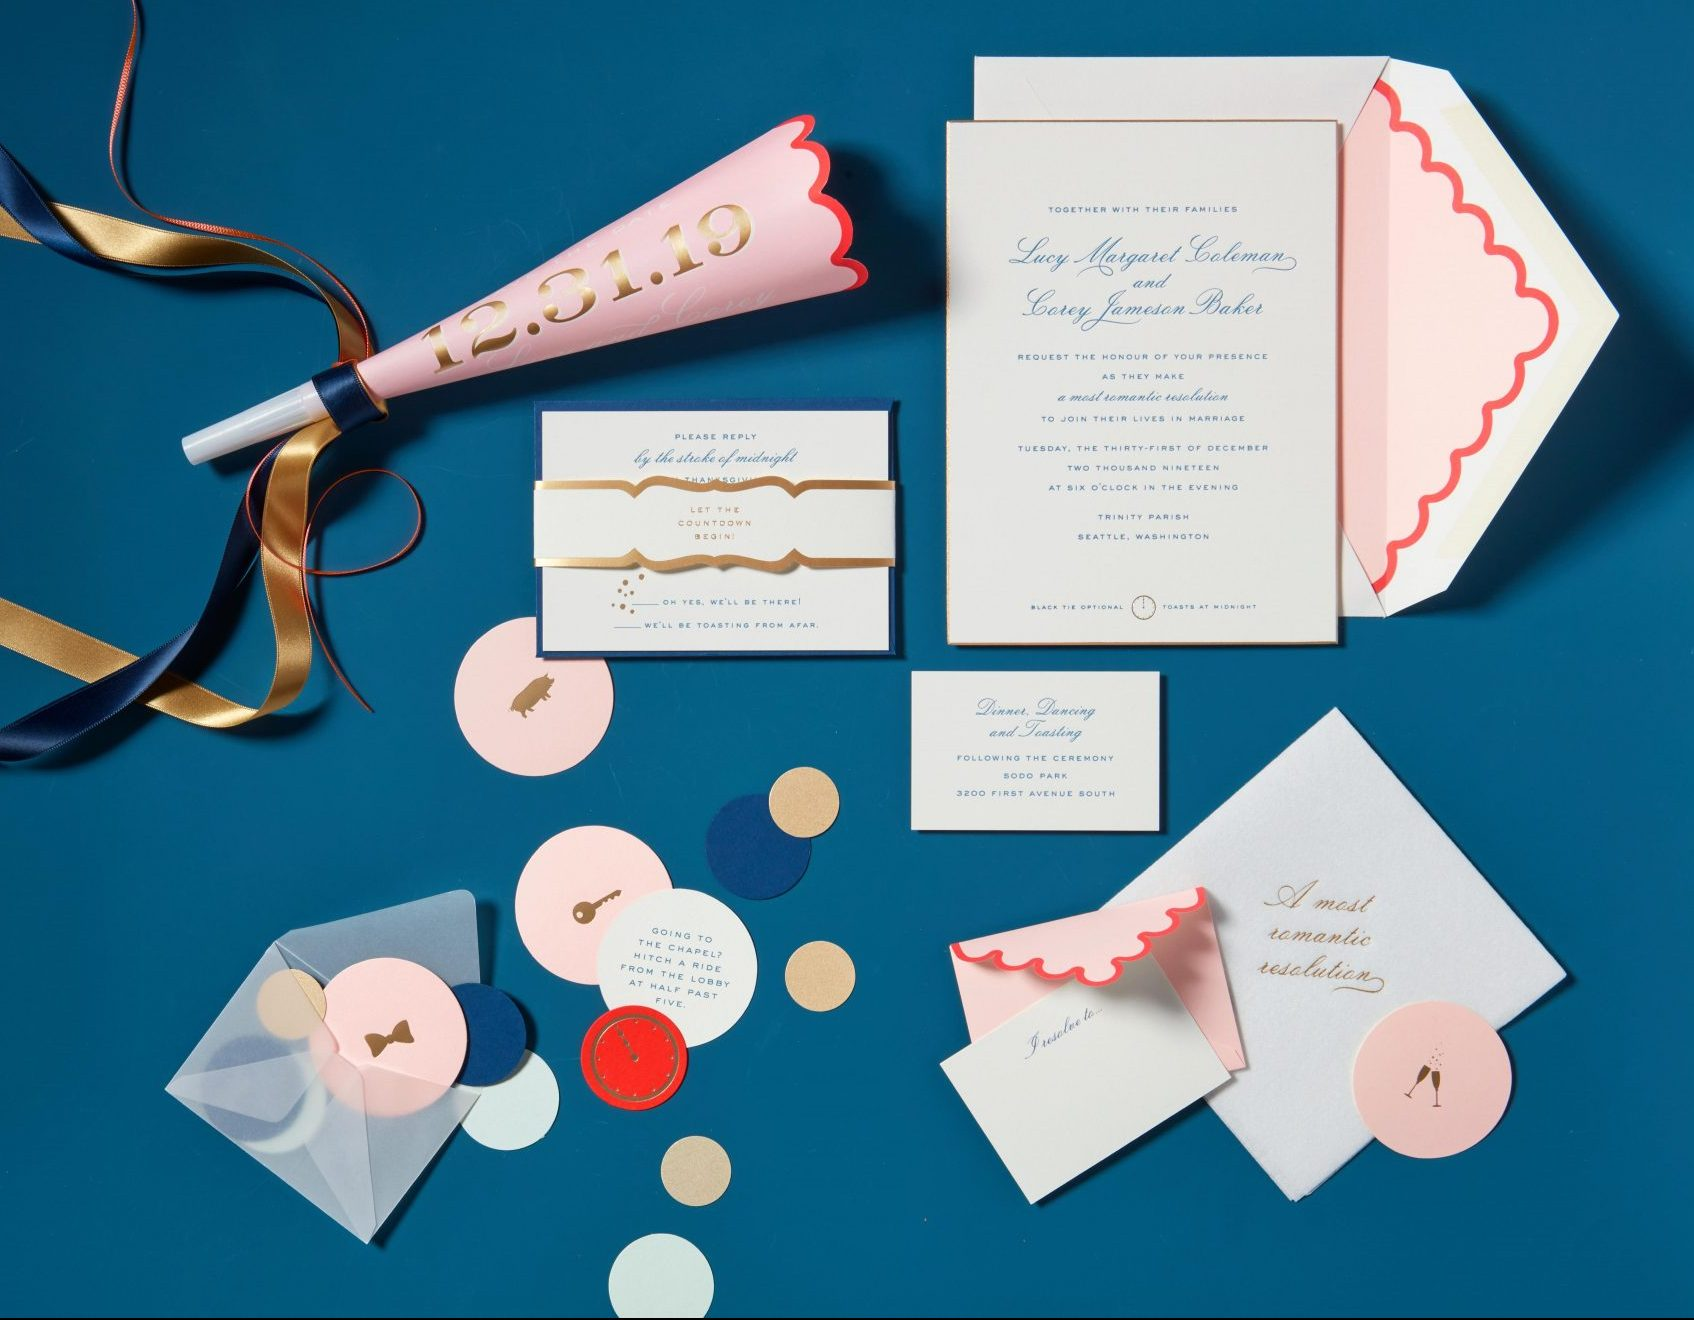 Your Definitive Guide to Choosing Wedding Stationery, According to an Expert